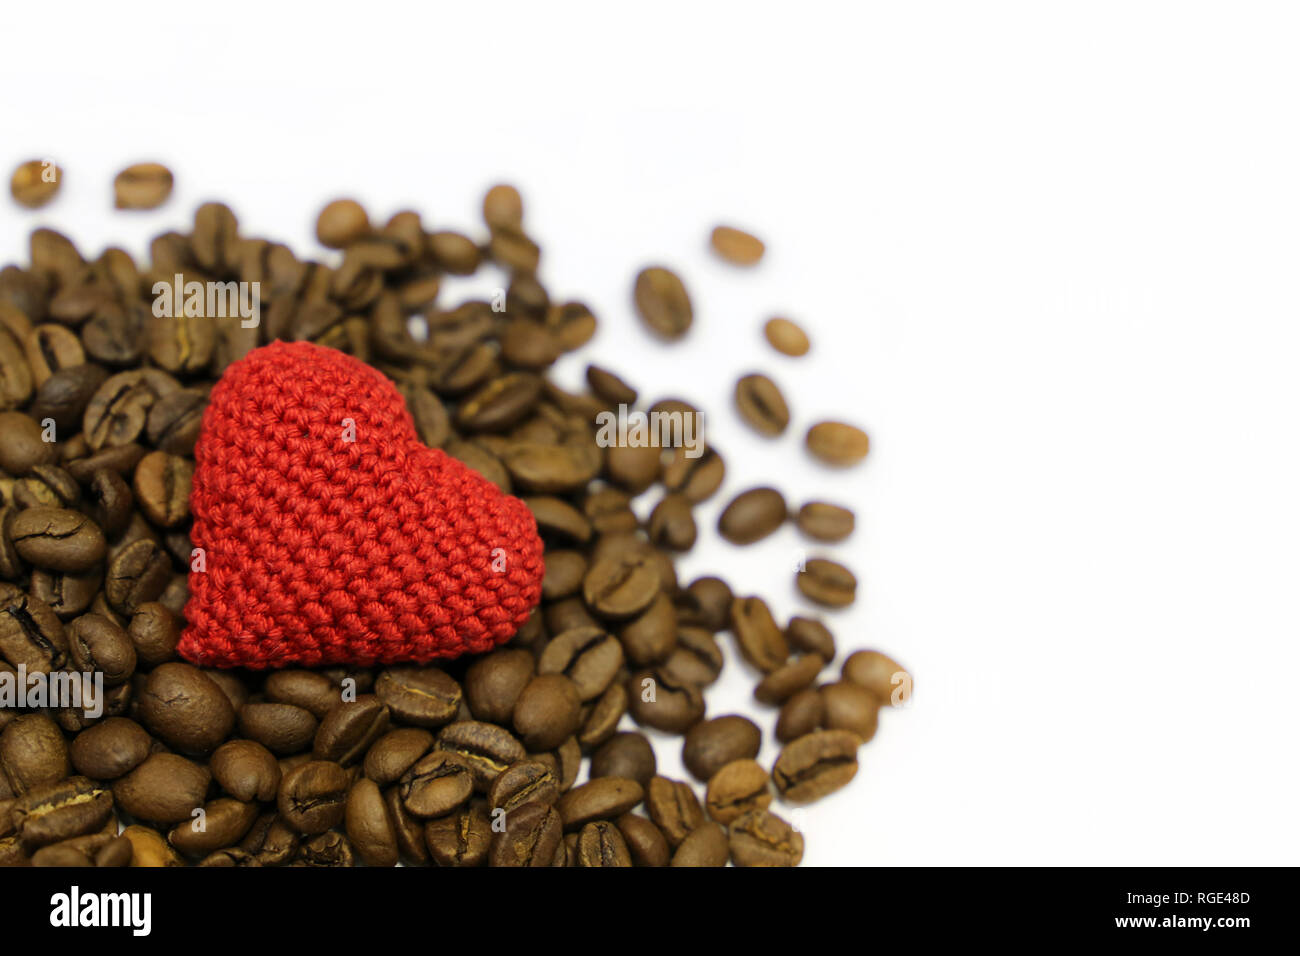 Love to coffee, Valentine heart and roasted coffee beans isolated on white background. Red knitted symbol of love, concept of romantic breakfast Stock Photo